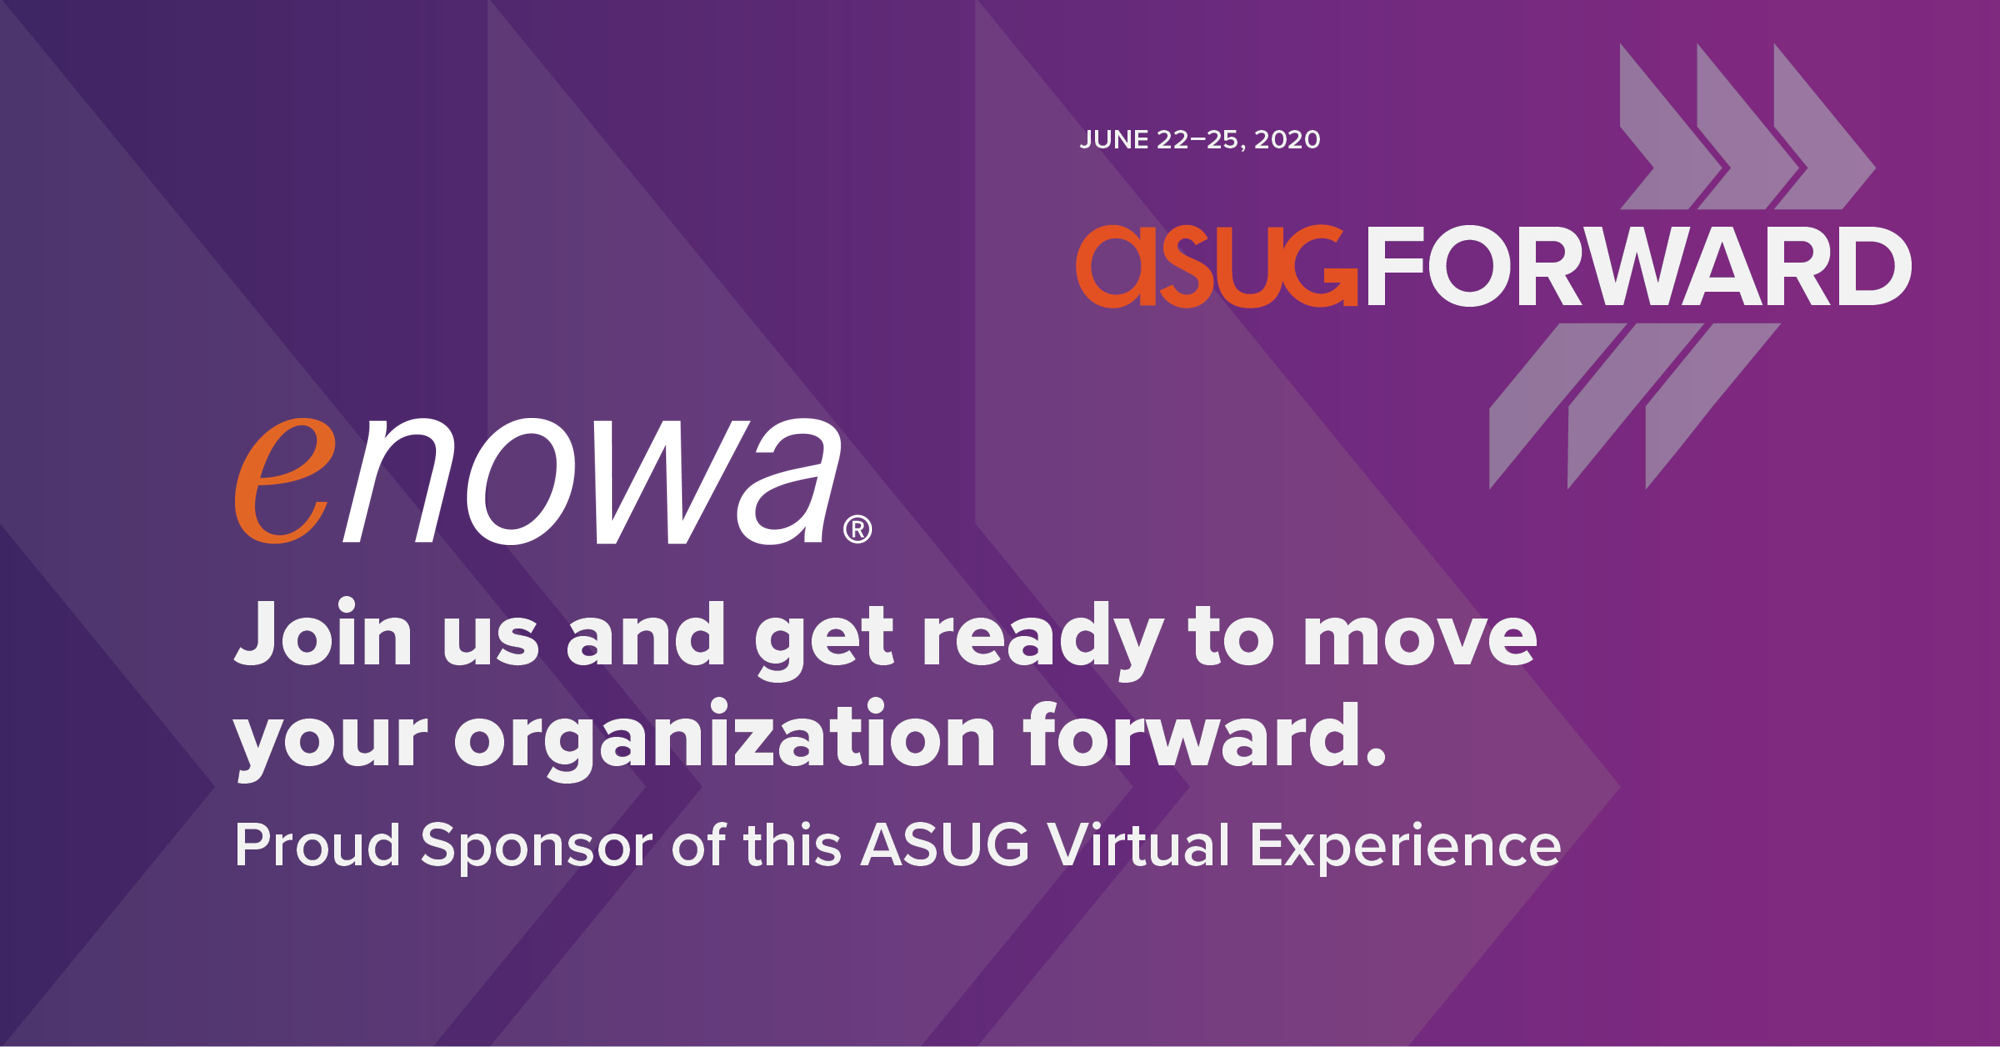 Enowa is a Proud Sponsor of ASUGForward, the New Virtual Experience